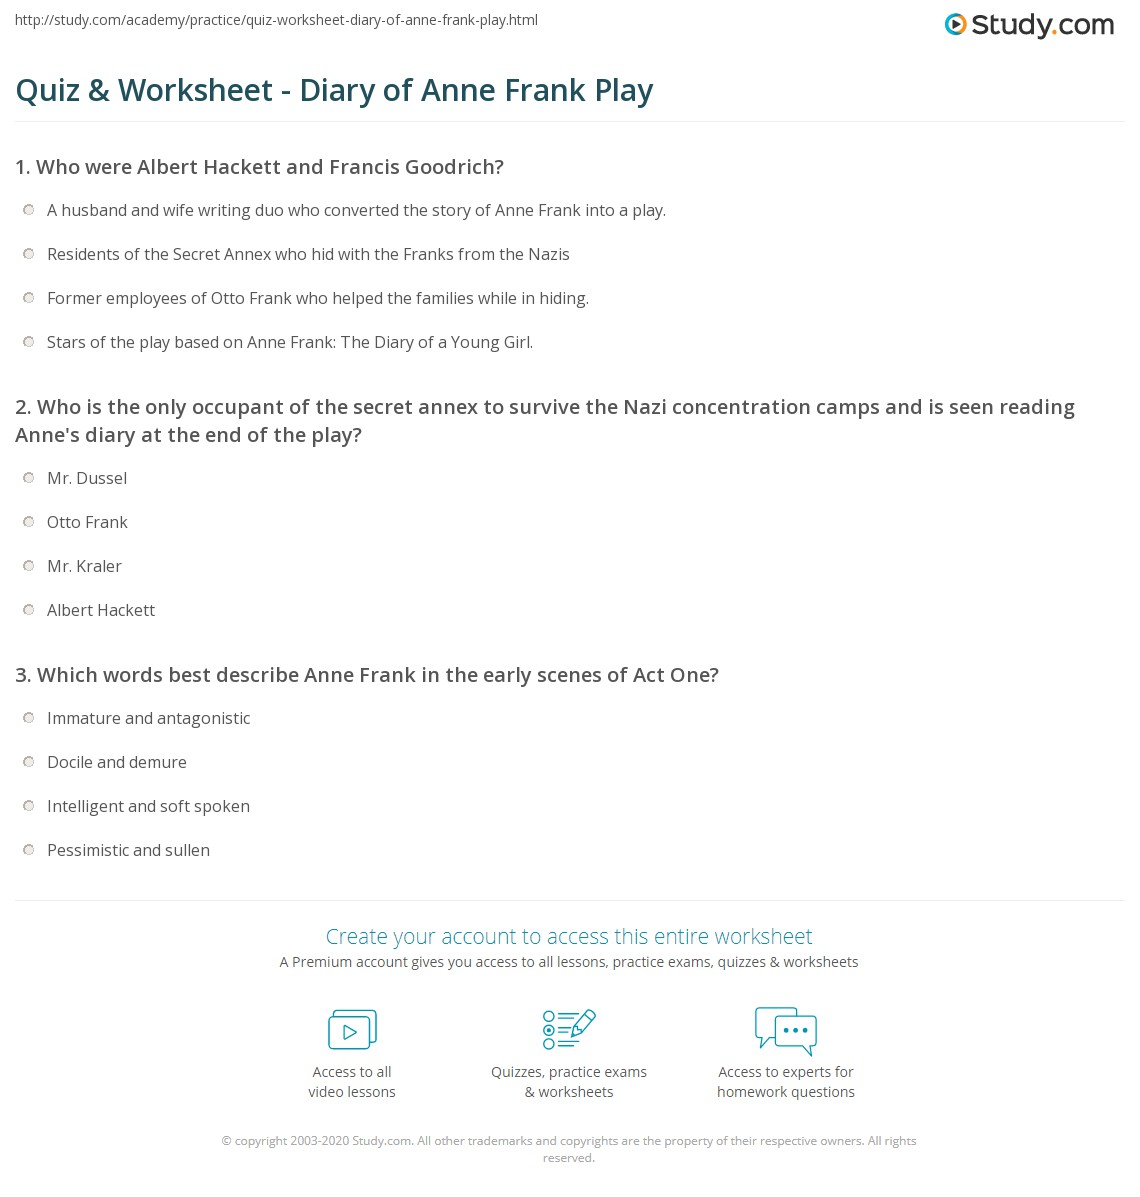 quiz worksheet diary of anne frank play com print diary of anne frank by albert hackett s goodrich summary characters worksheet